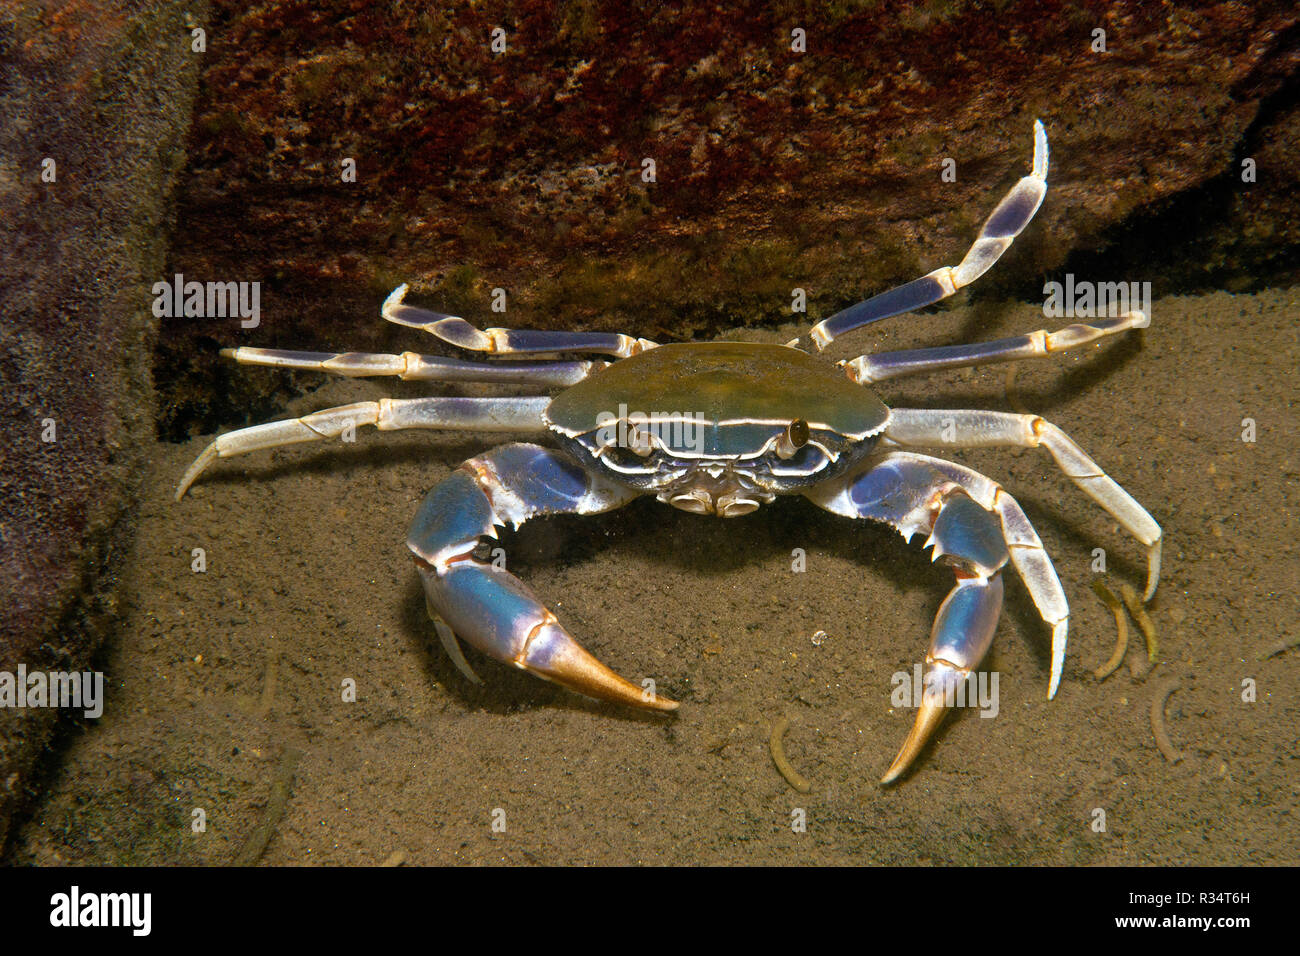 Malawi blue crab (Potamonautes orbitospinus), endemic in Malawi lake, Malawi, East Africa, Africa - Stock Image